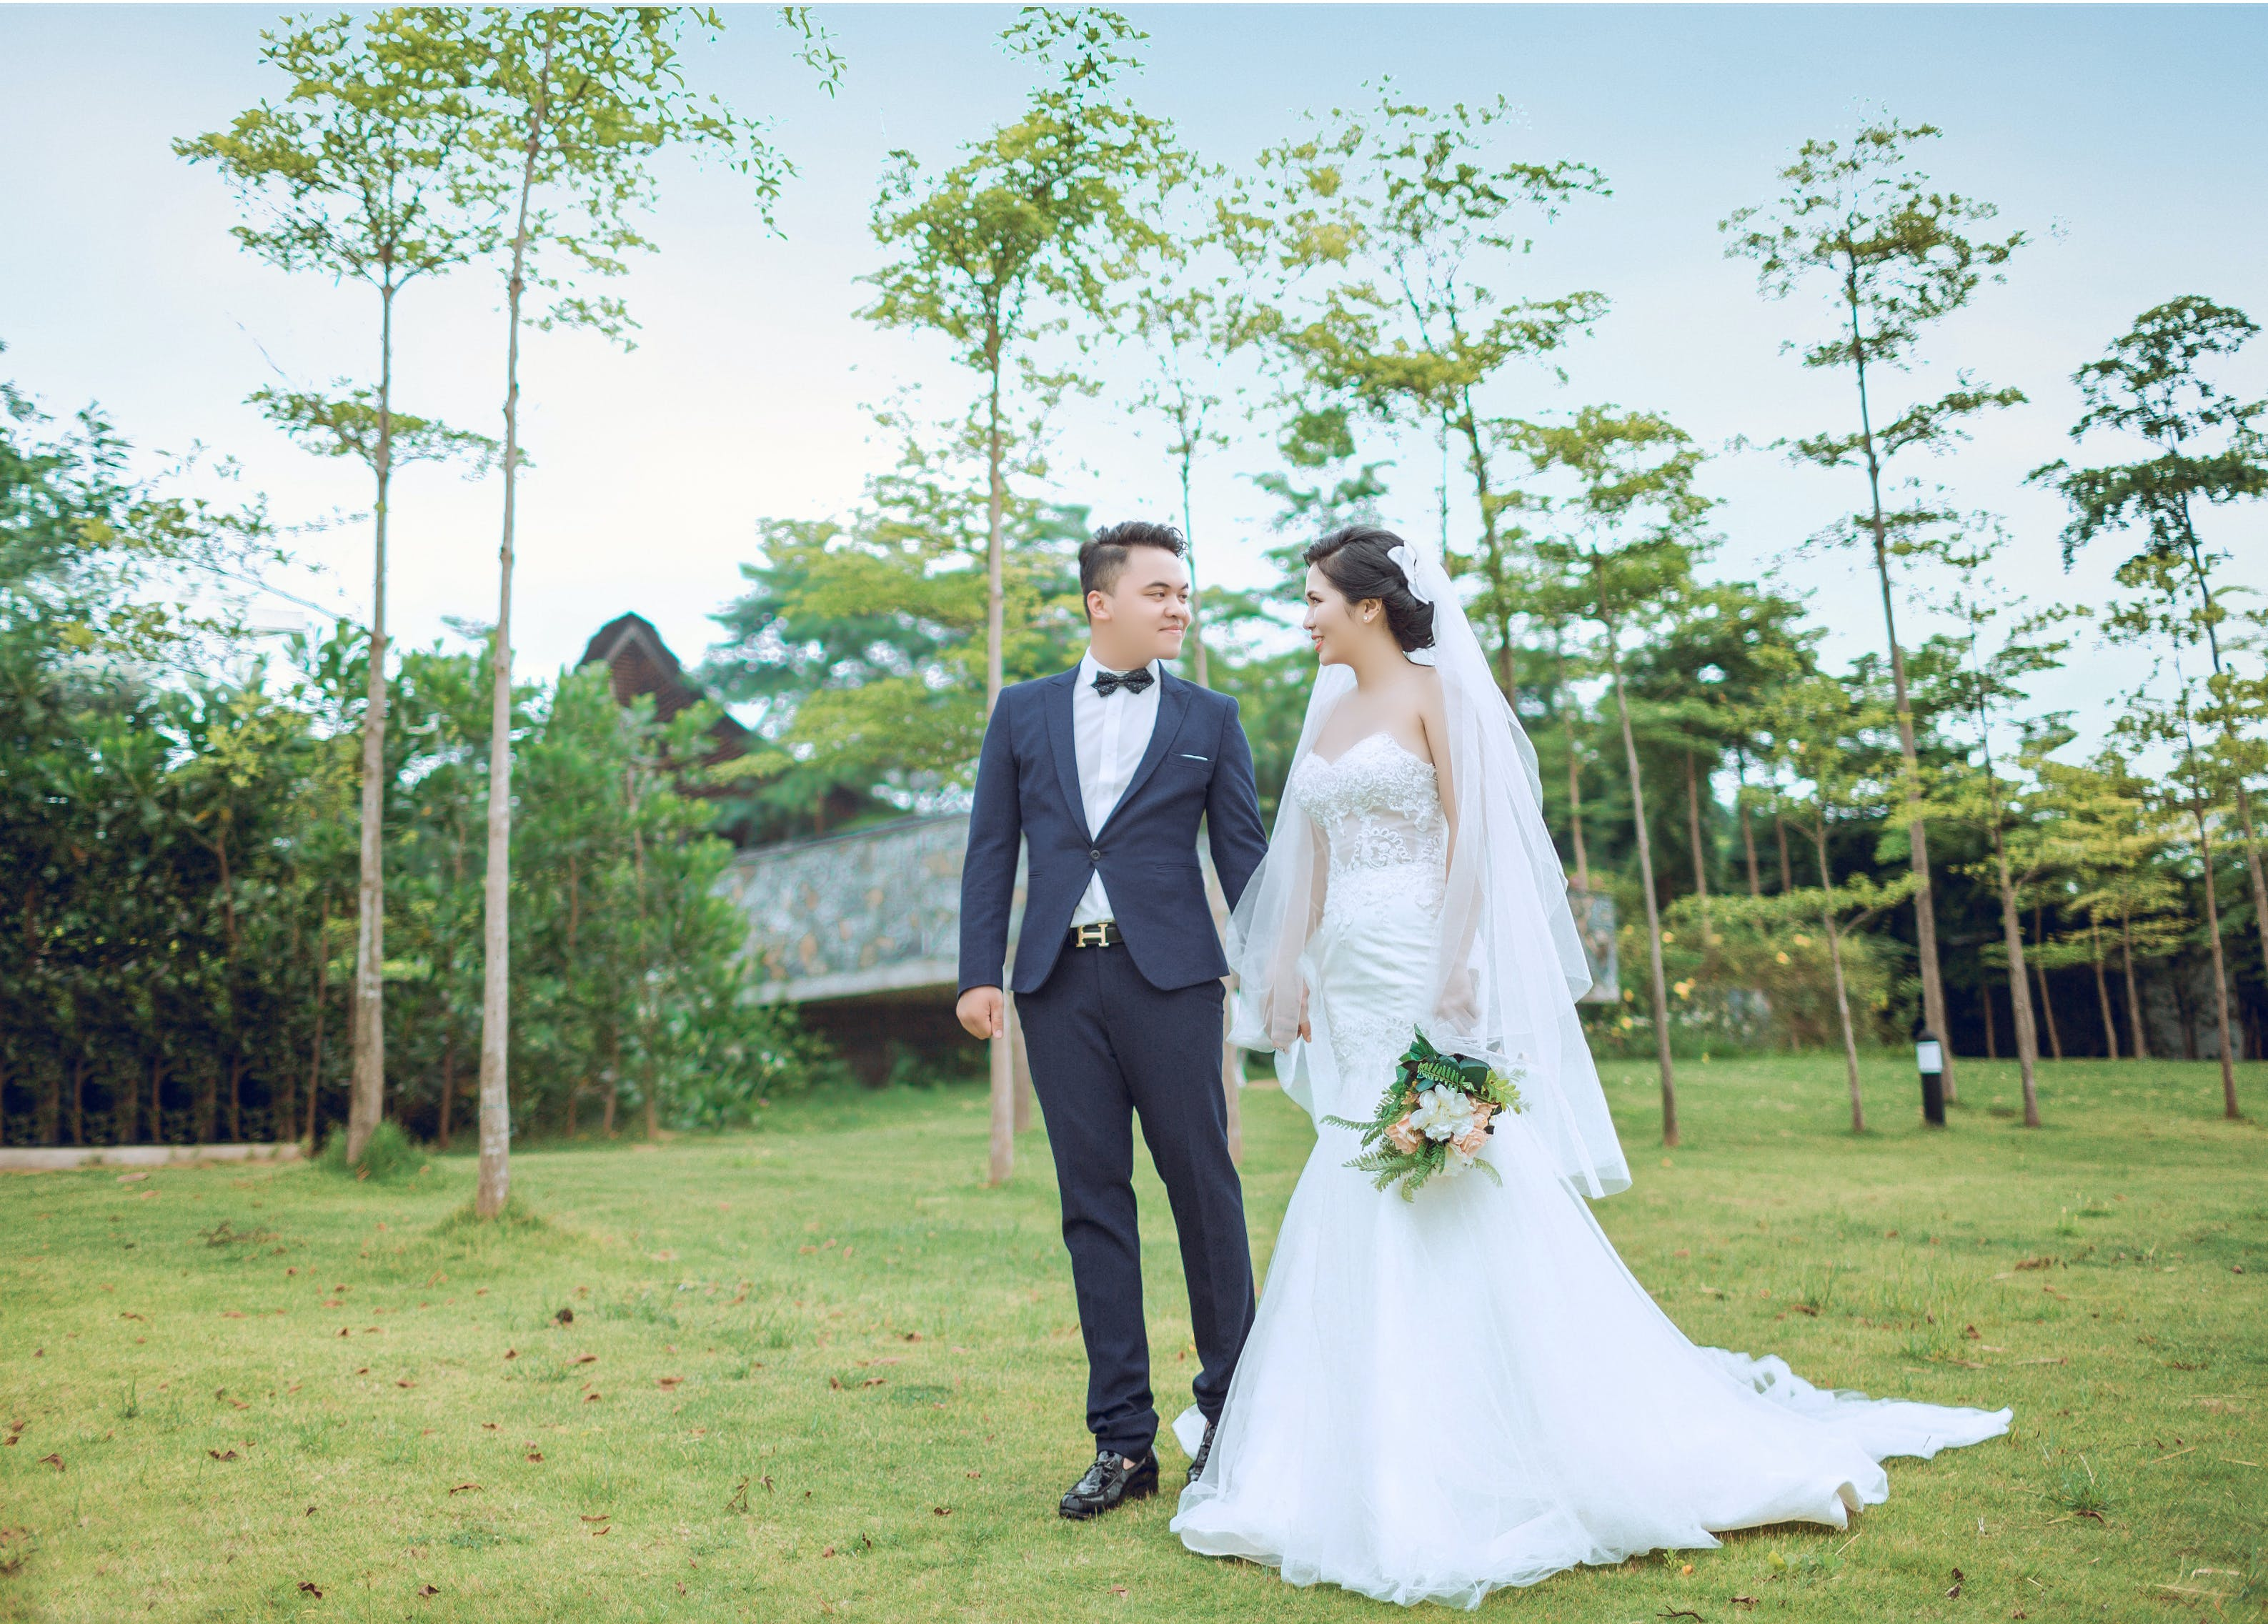 Bride and Groom Standing on Green Grass Surrounded by Green Leafed Trees